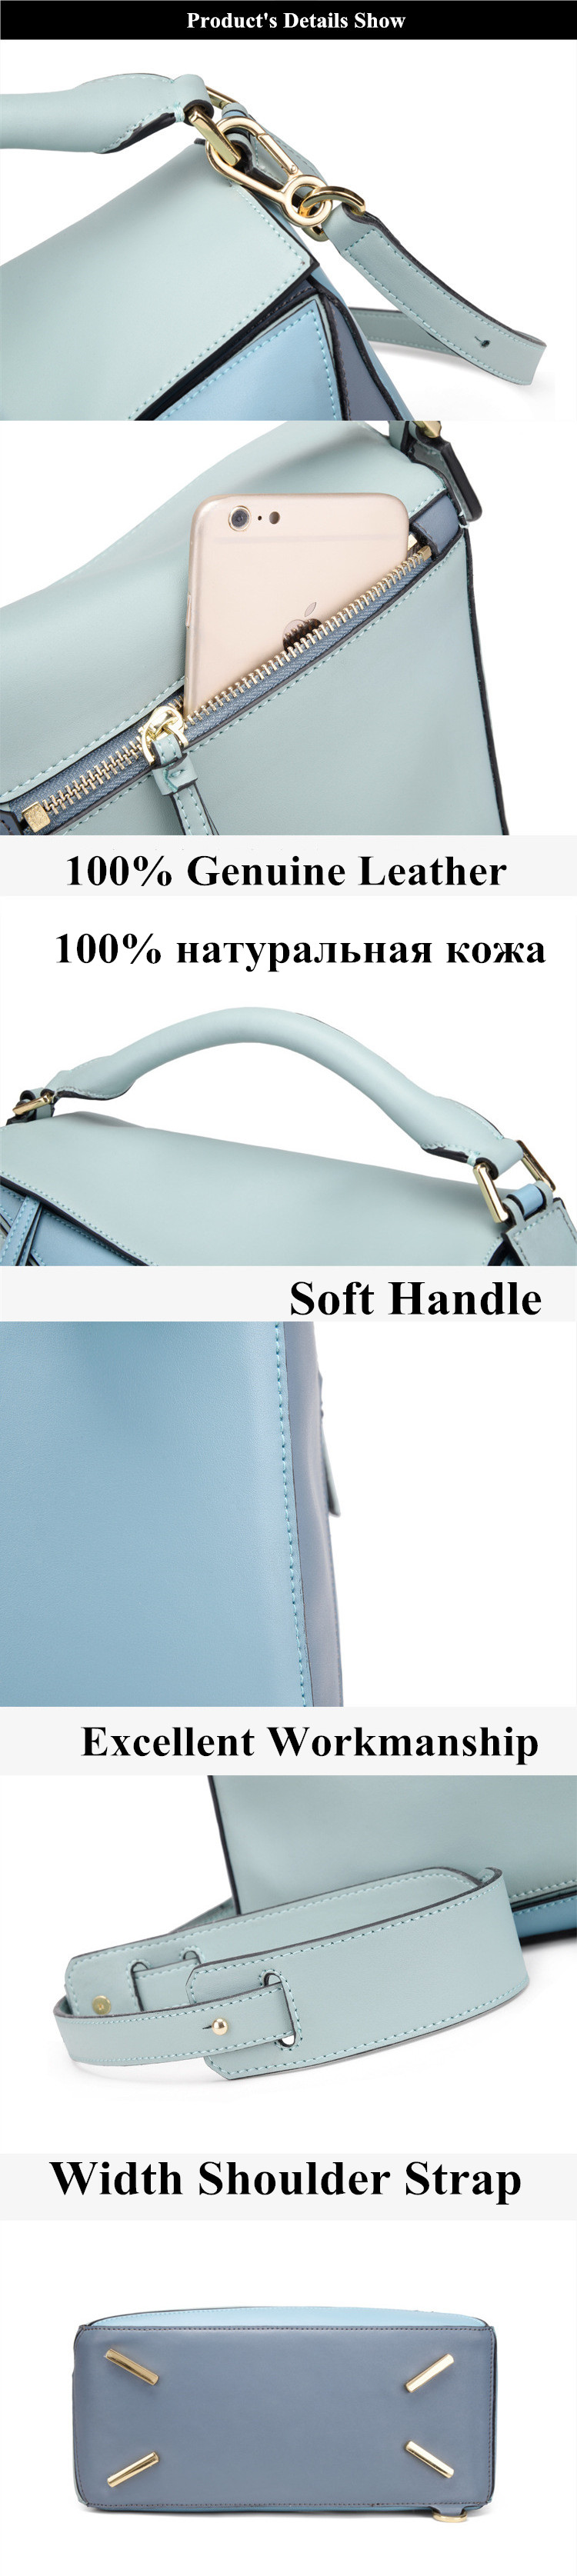 Luxury Handbag Women Bags Designer Inspired High Qyality Genuine Leather Shoulder Bag (14)